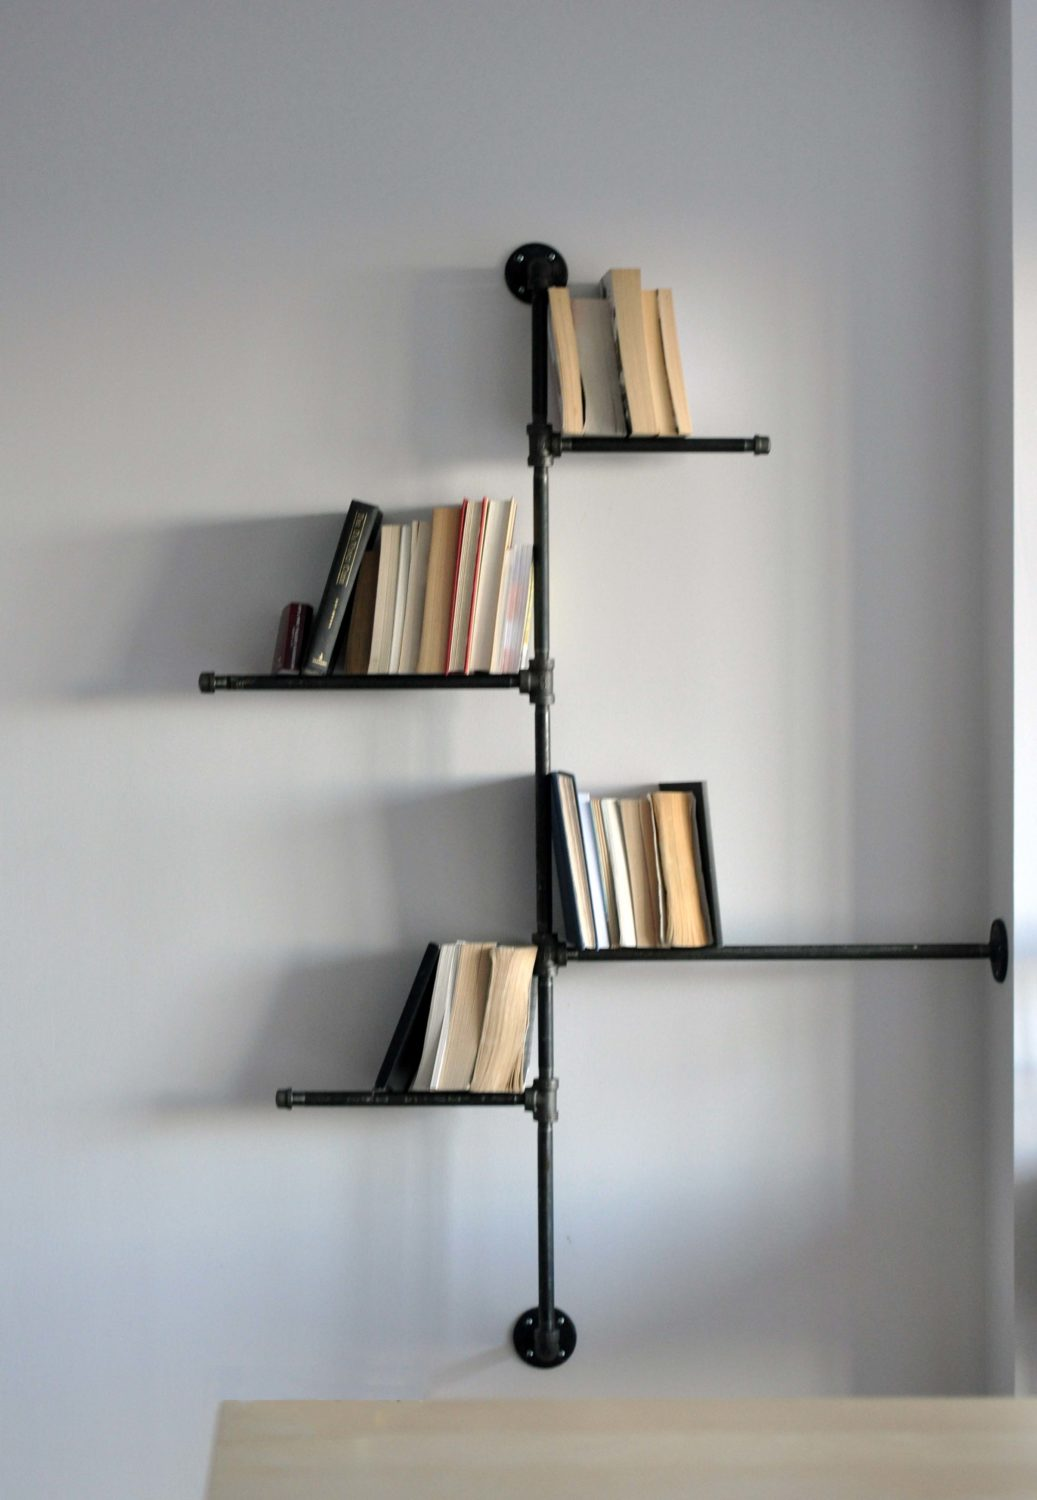 DIY Pipe Bookshelf 2776 x 4016